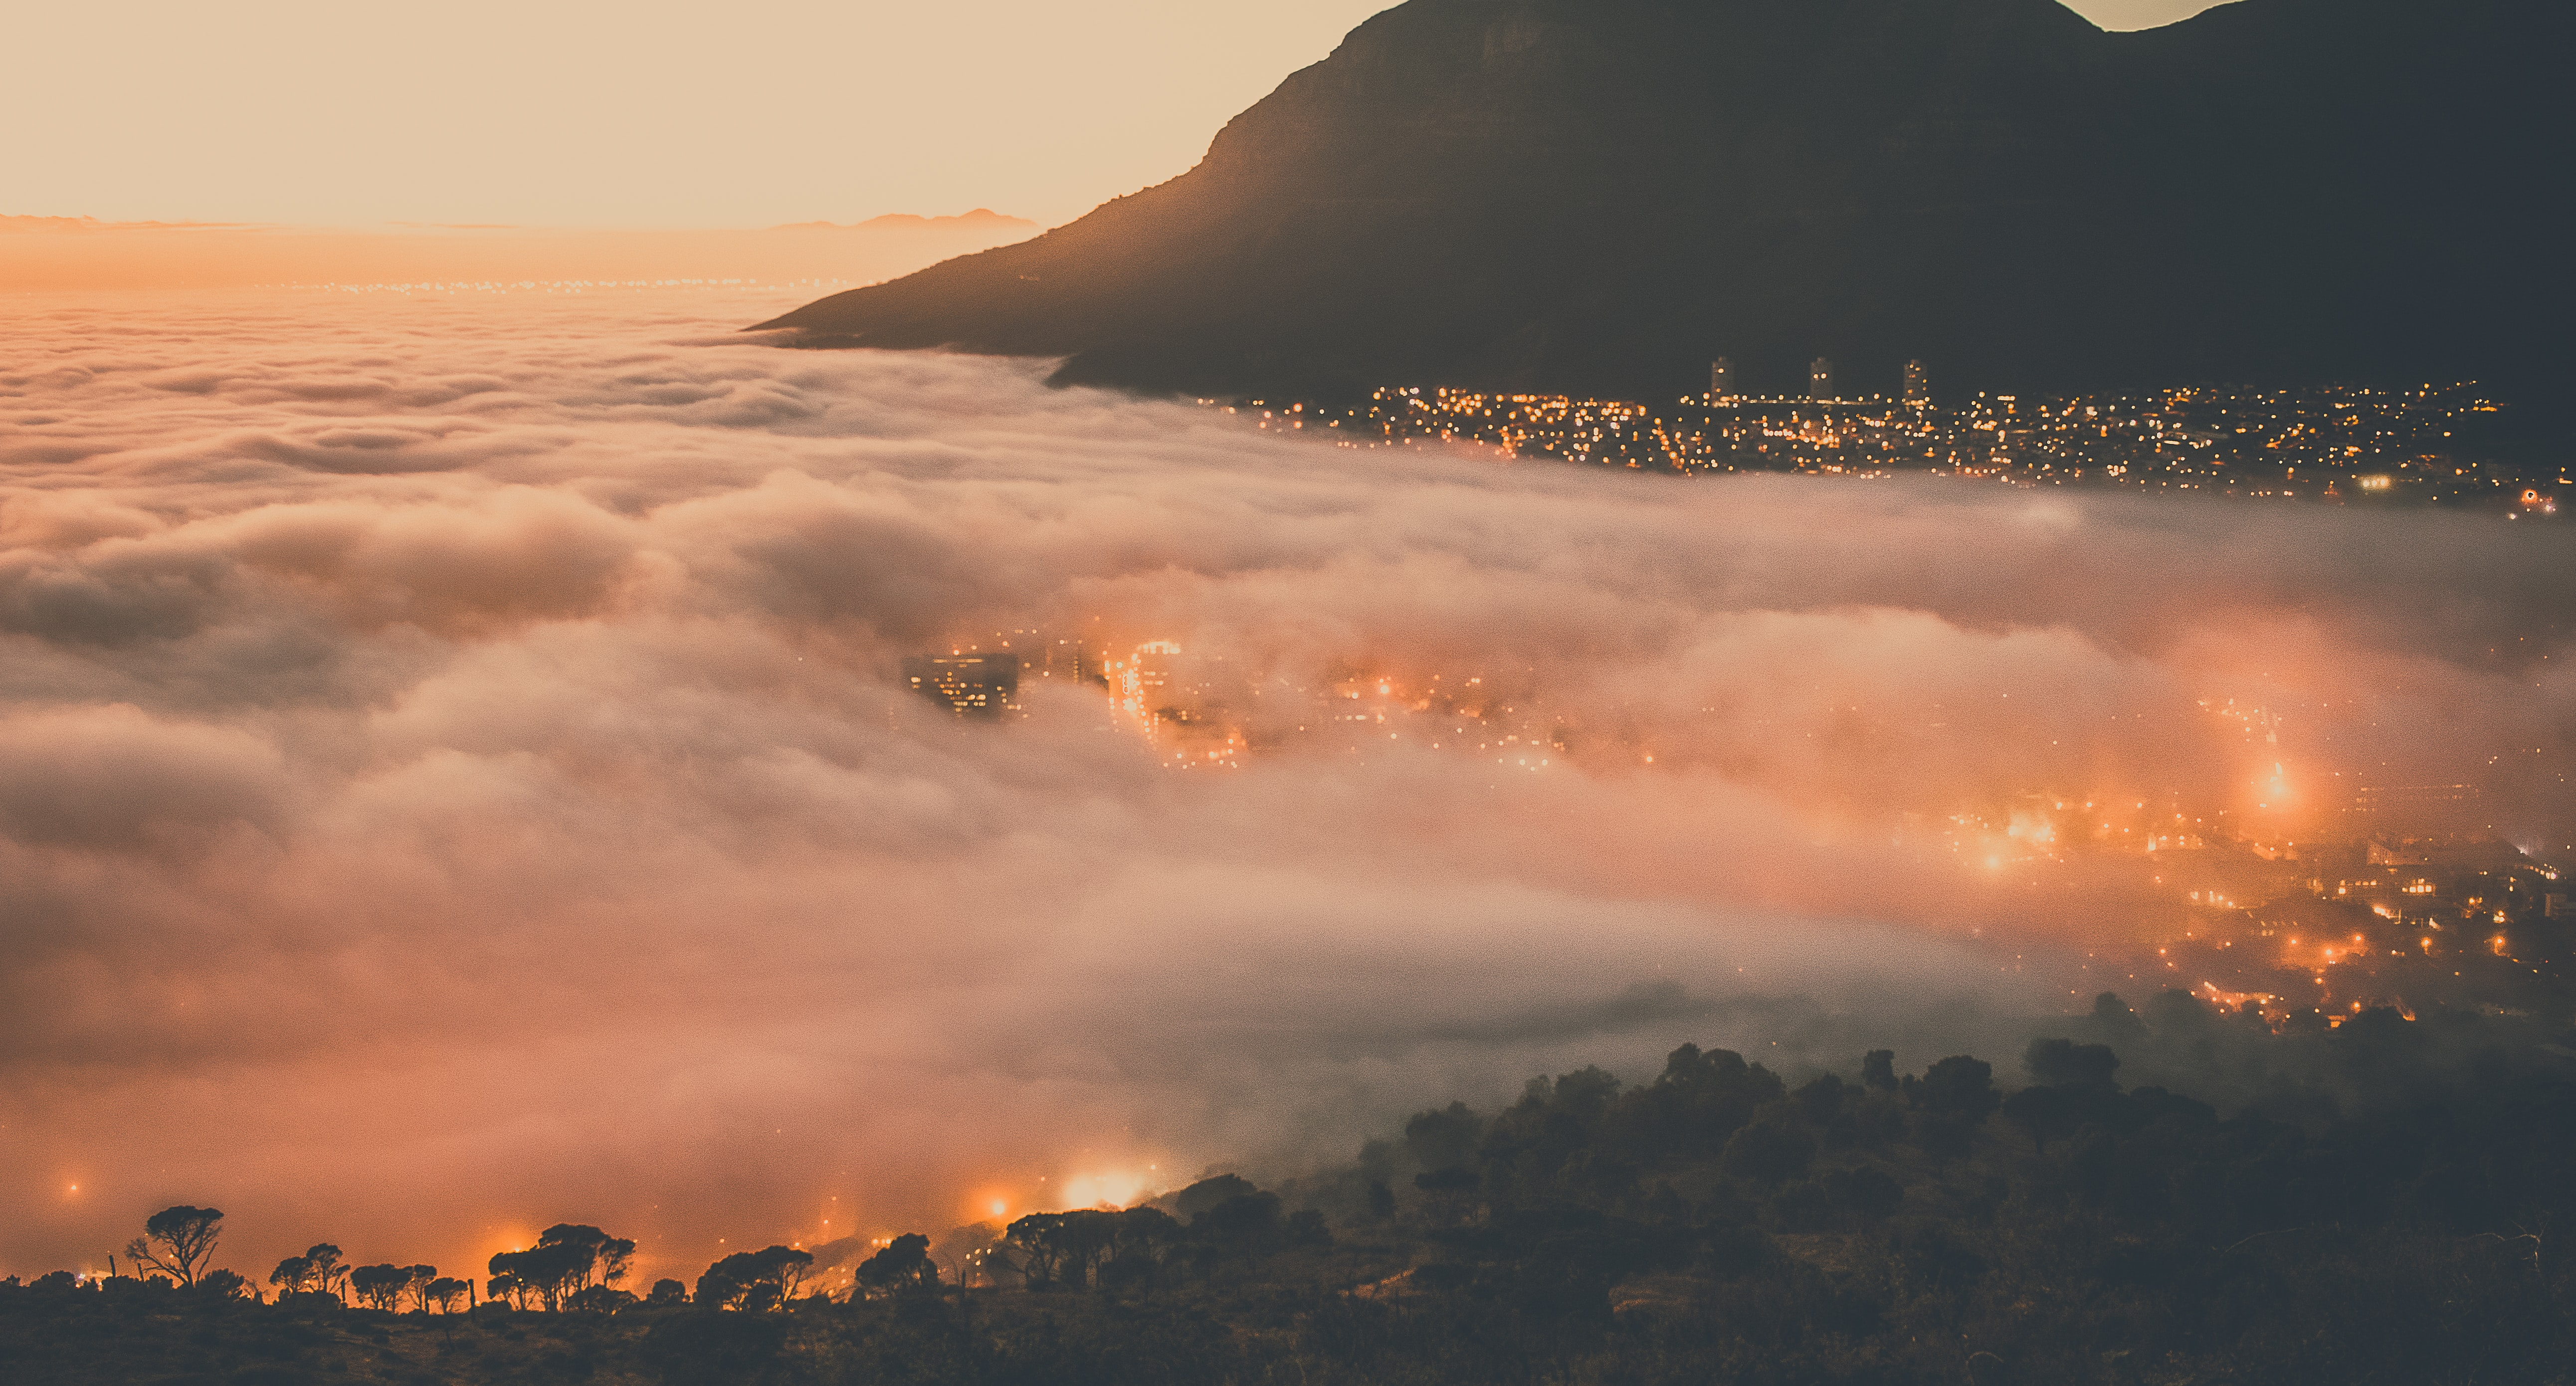 The hidden city of Cape Town covered by clouds